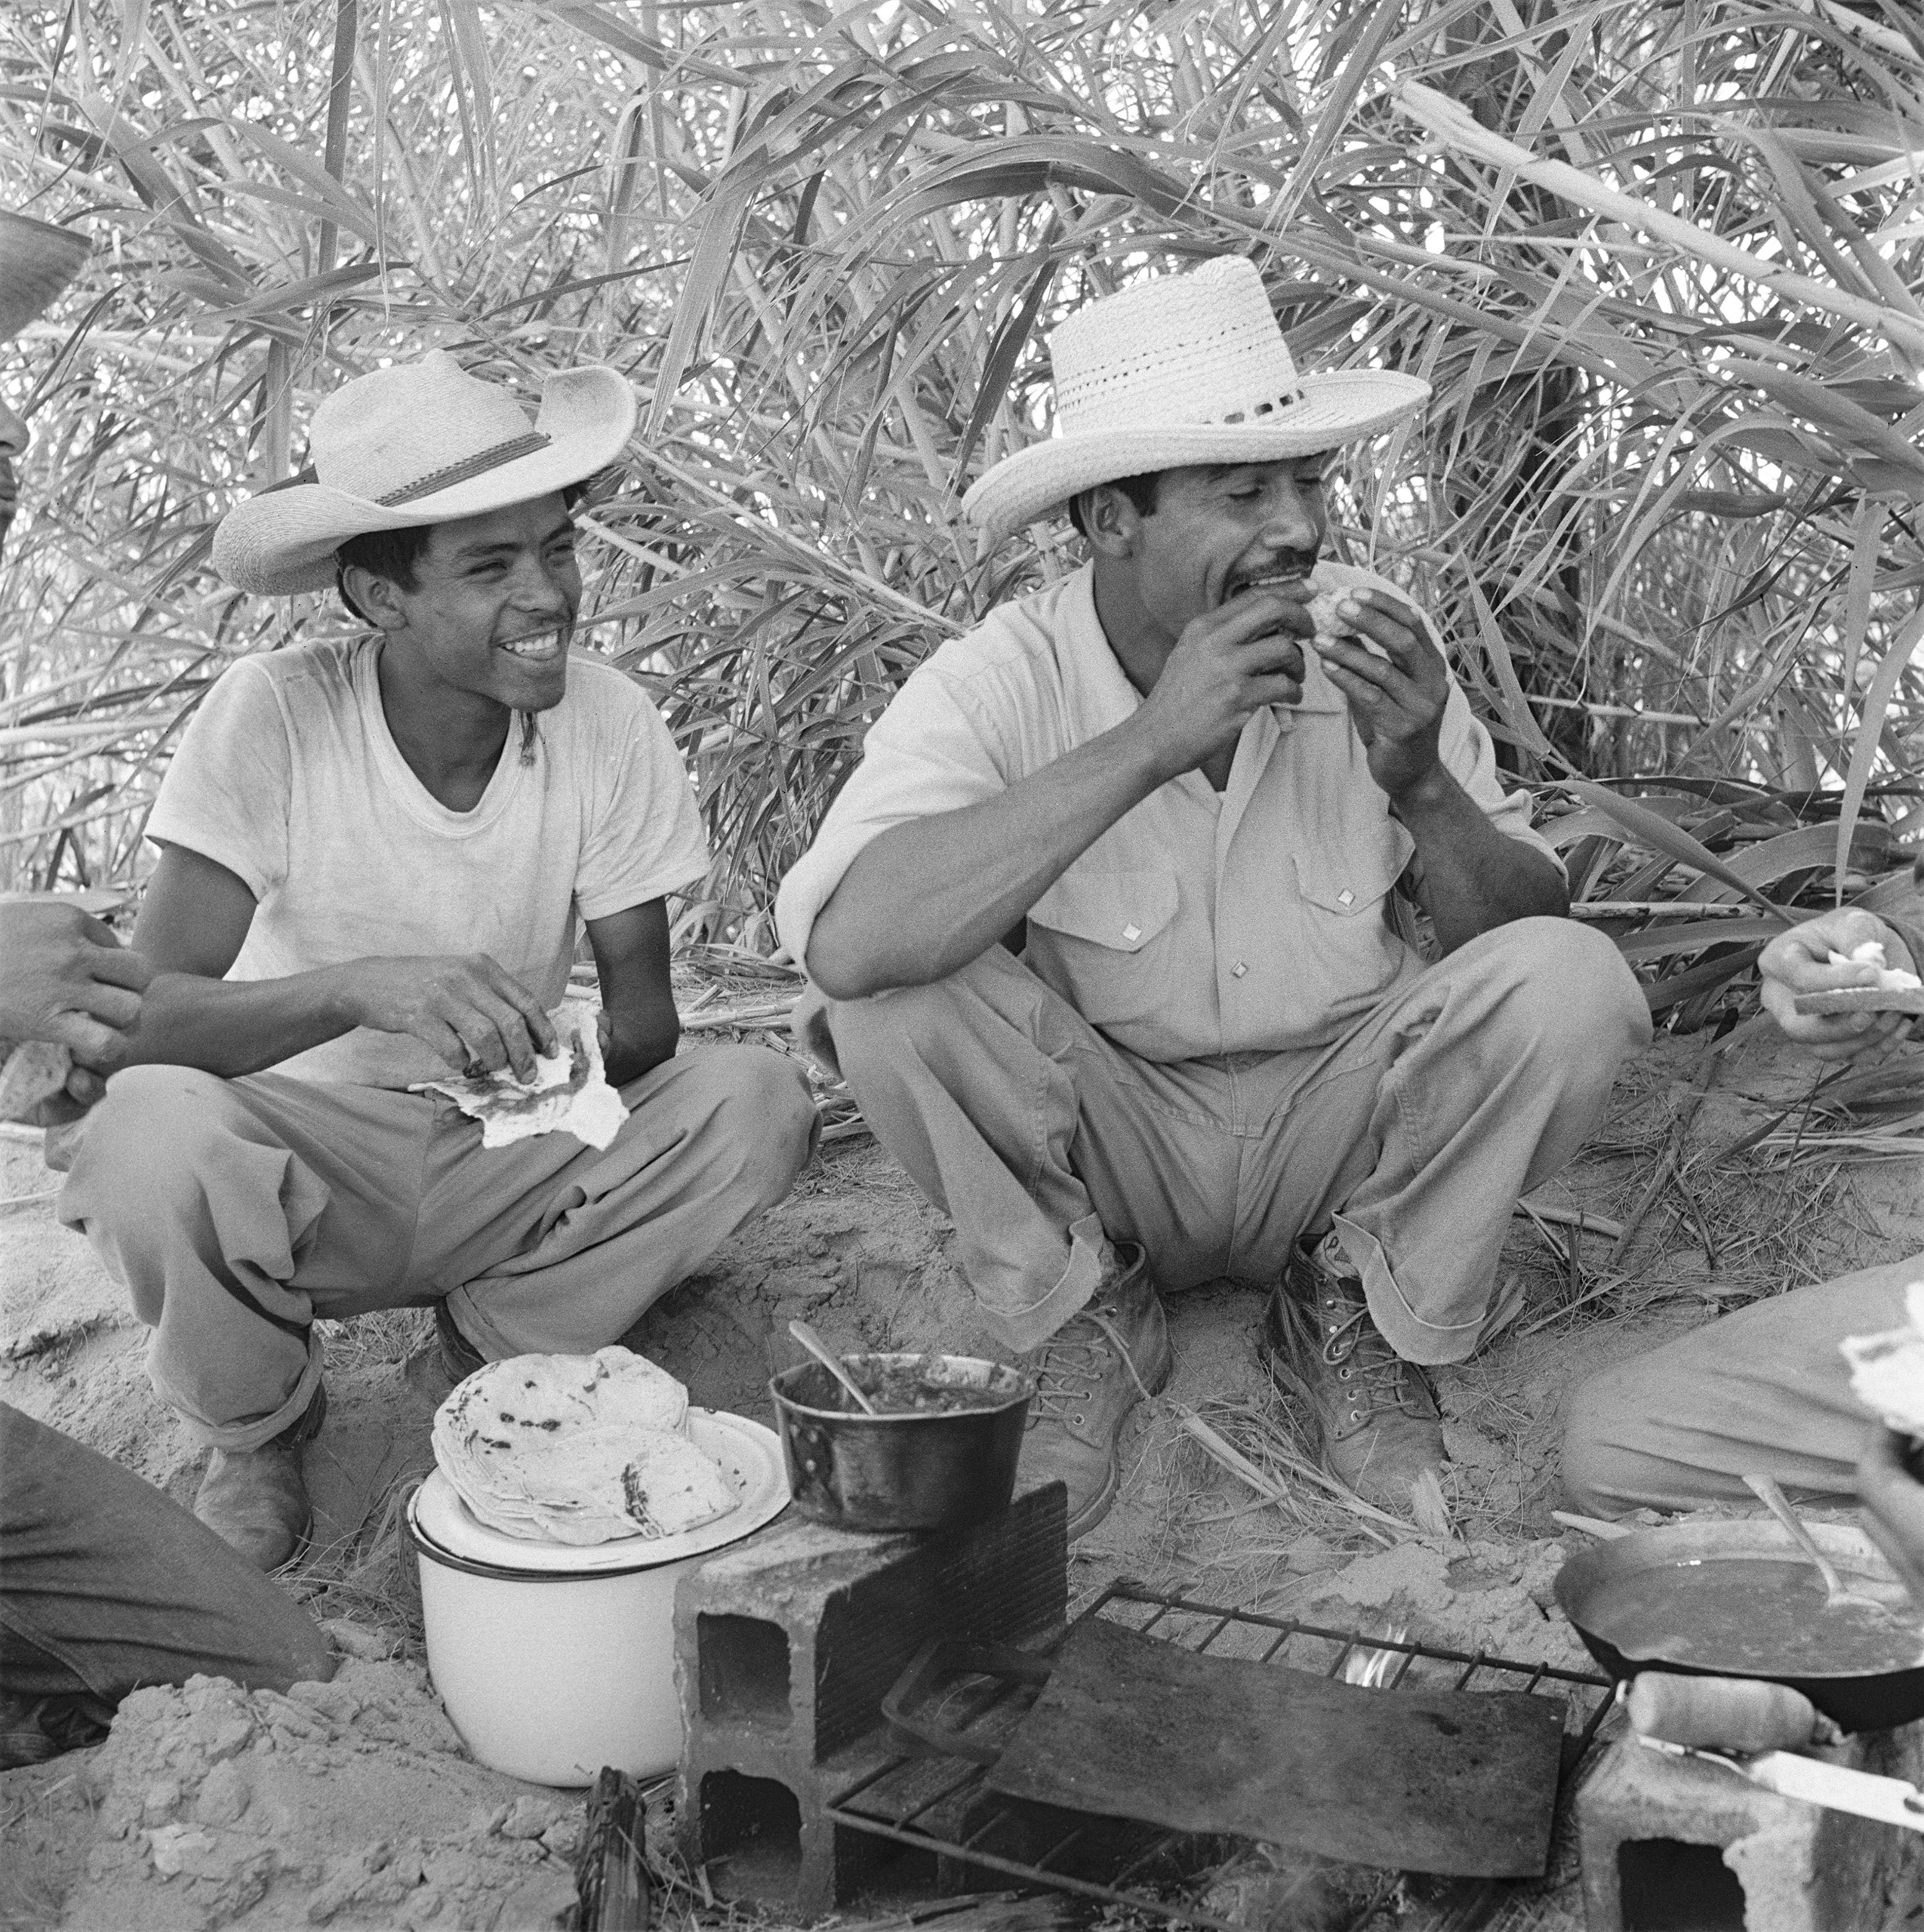 Tamayo and his fellow workers take a break for food during their work day on a ranch in California, 1957.